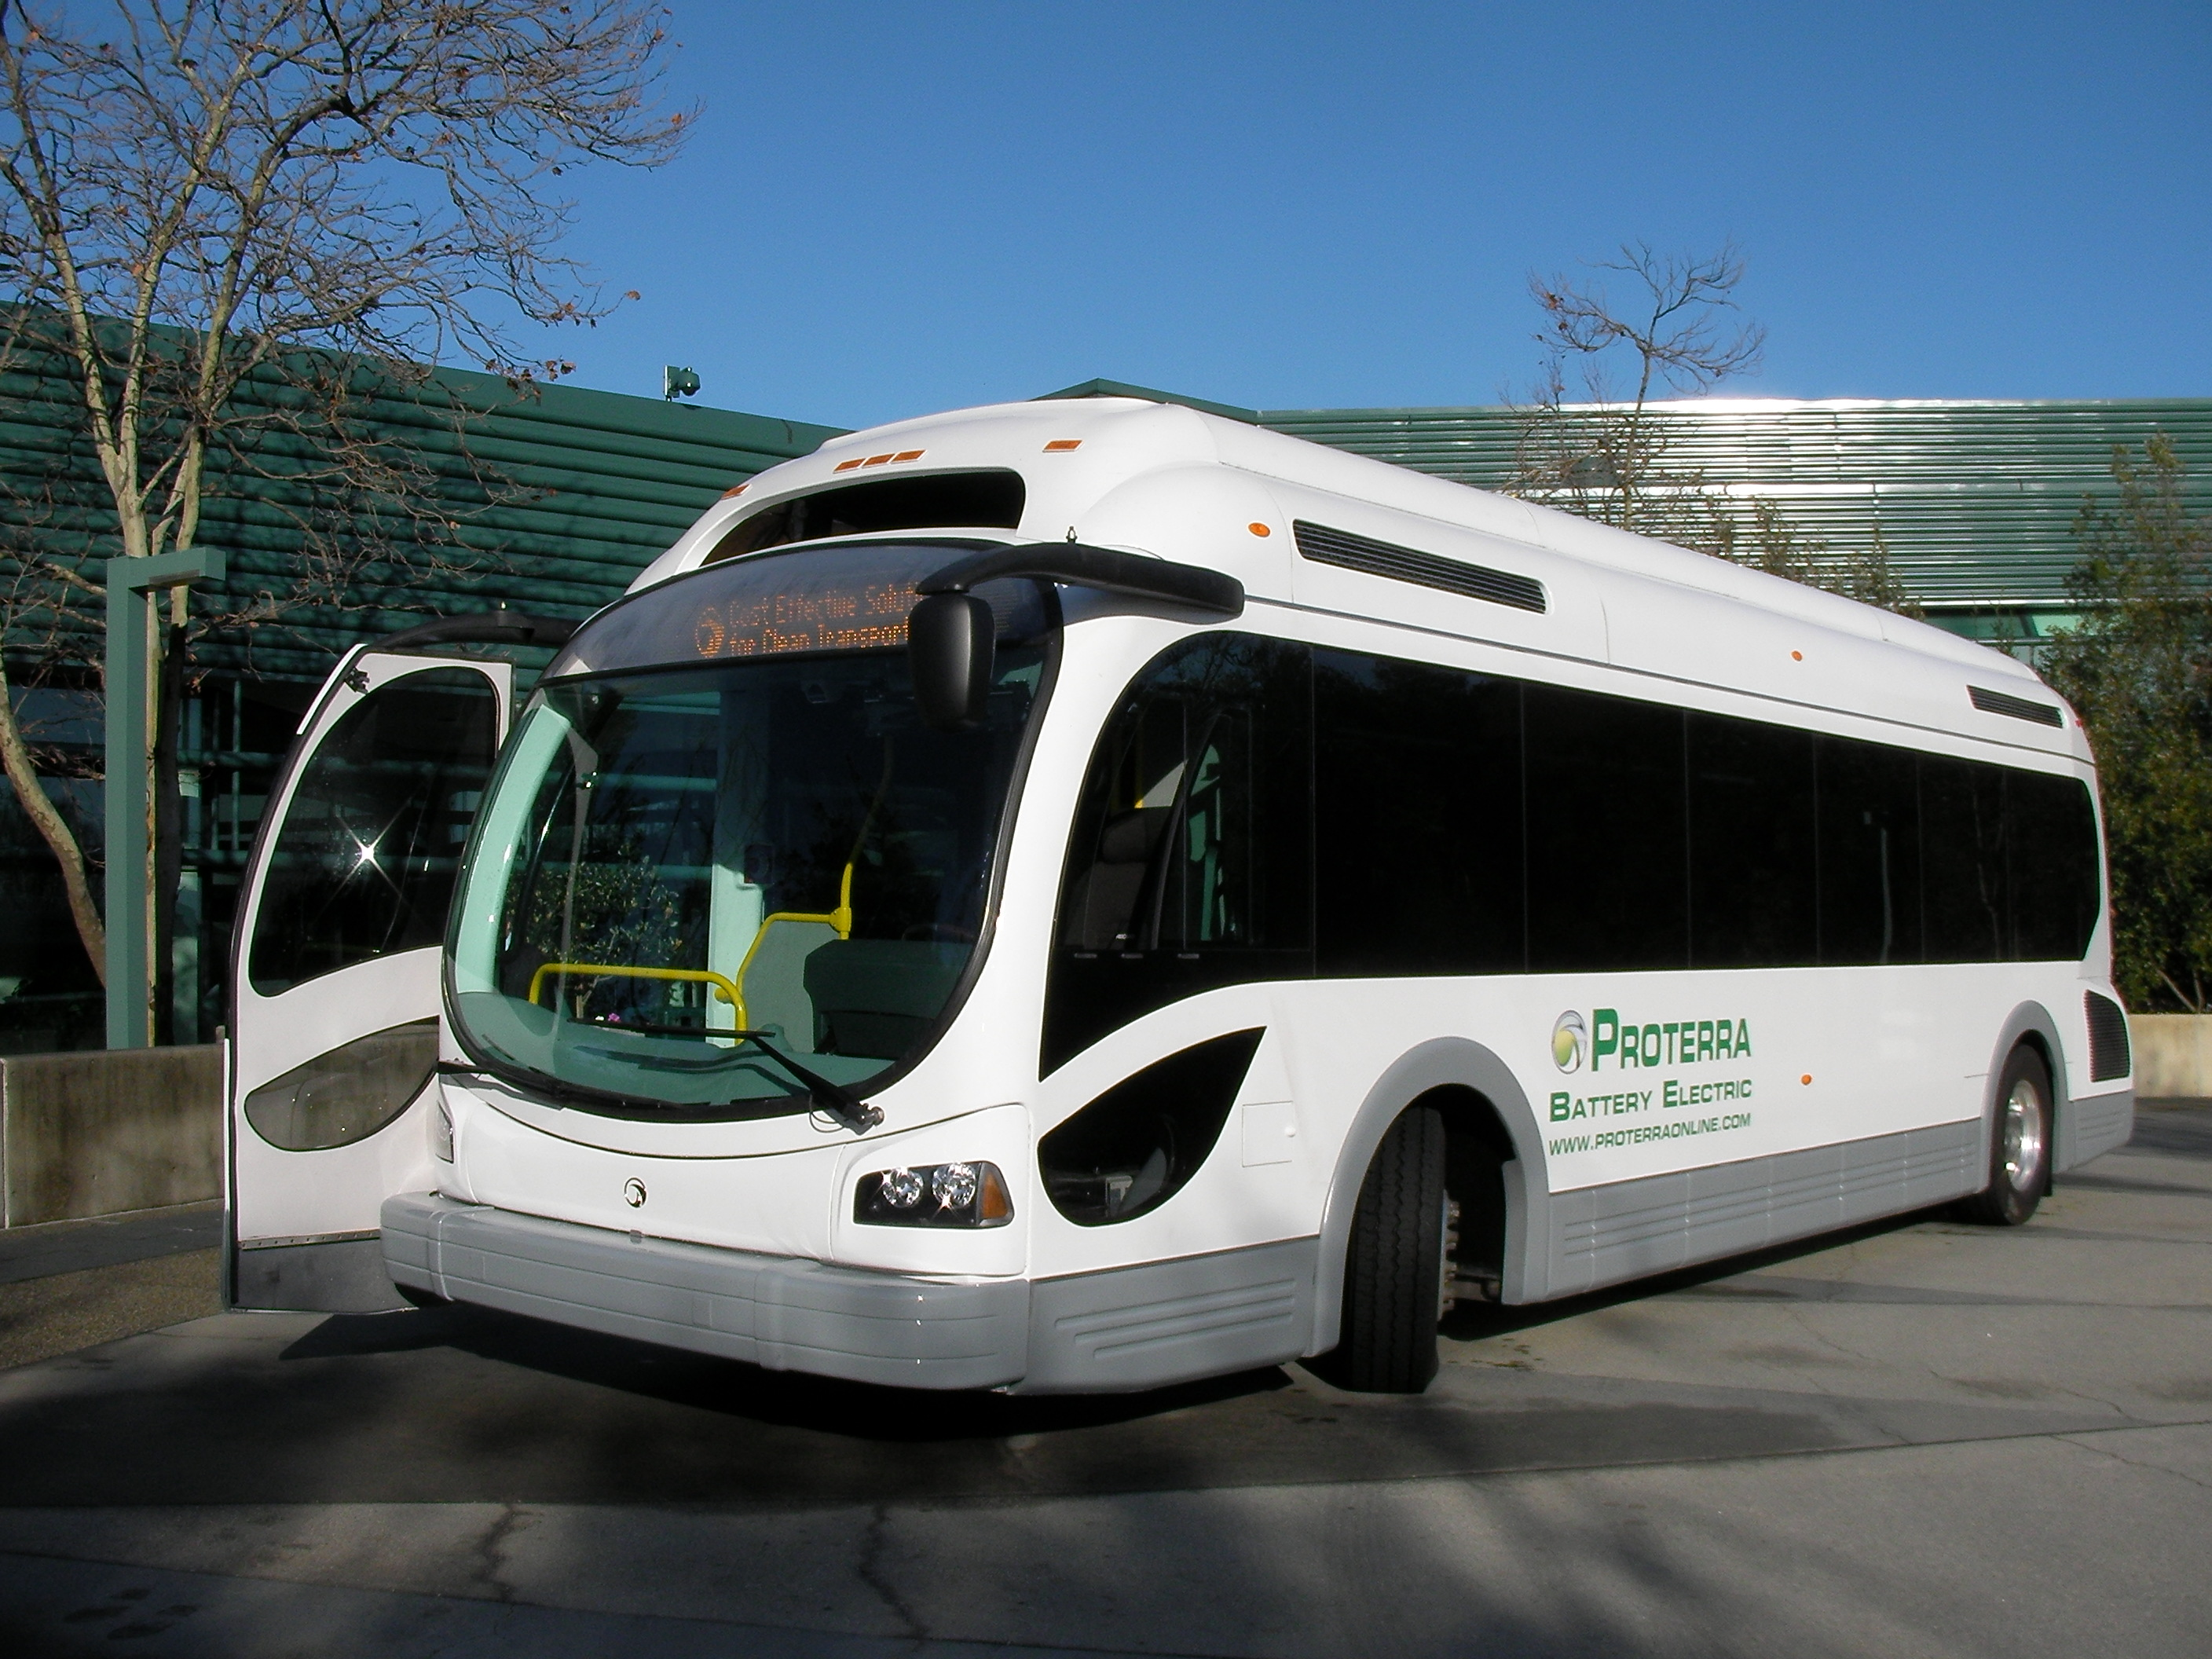 Proterra Battery Electric Bus This Photo